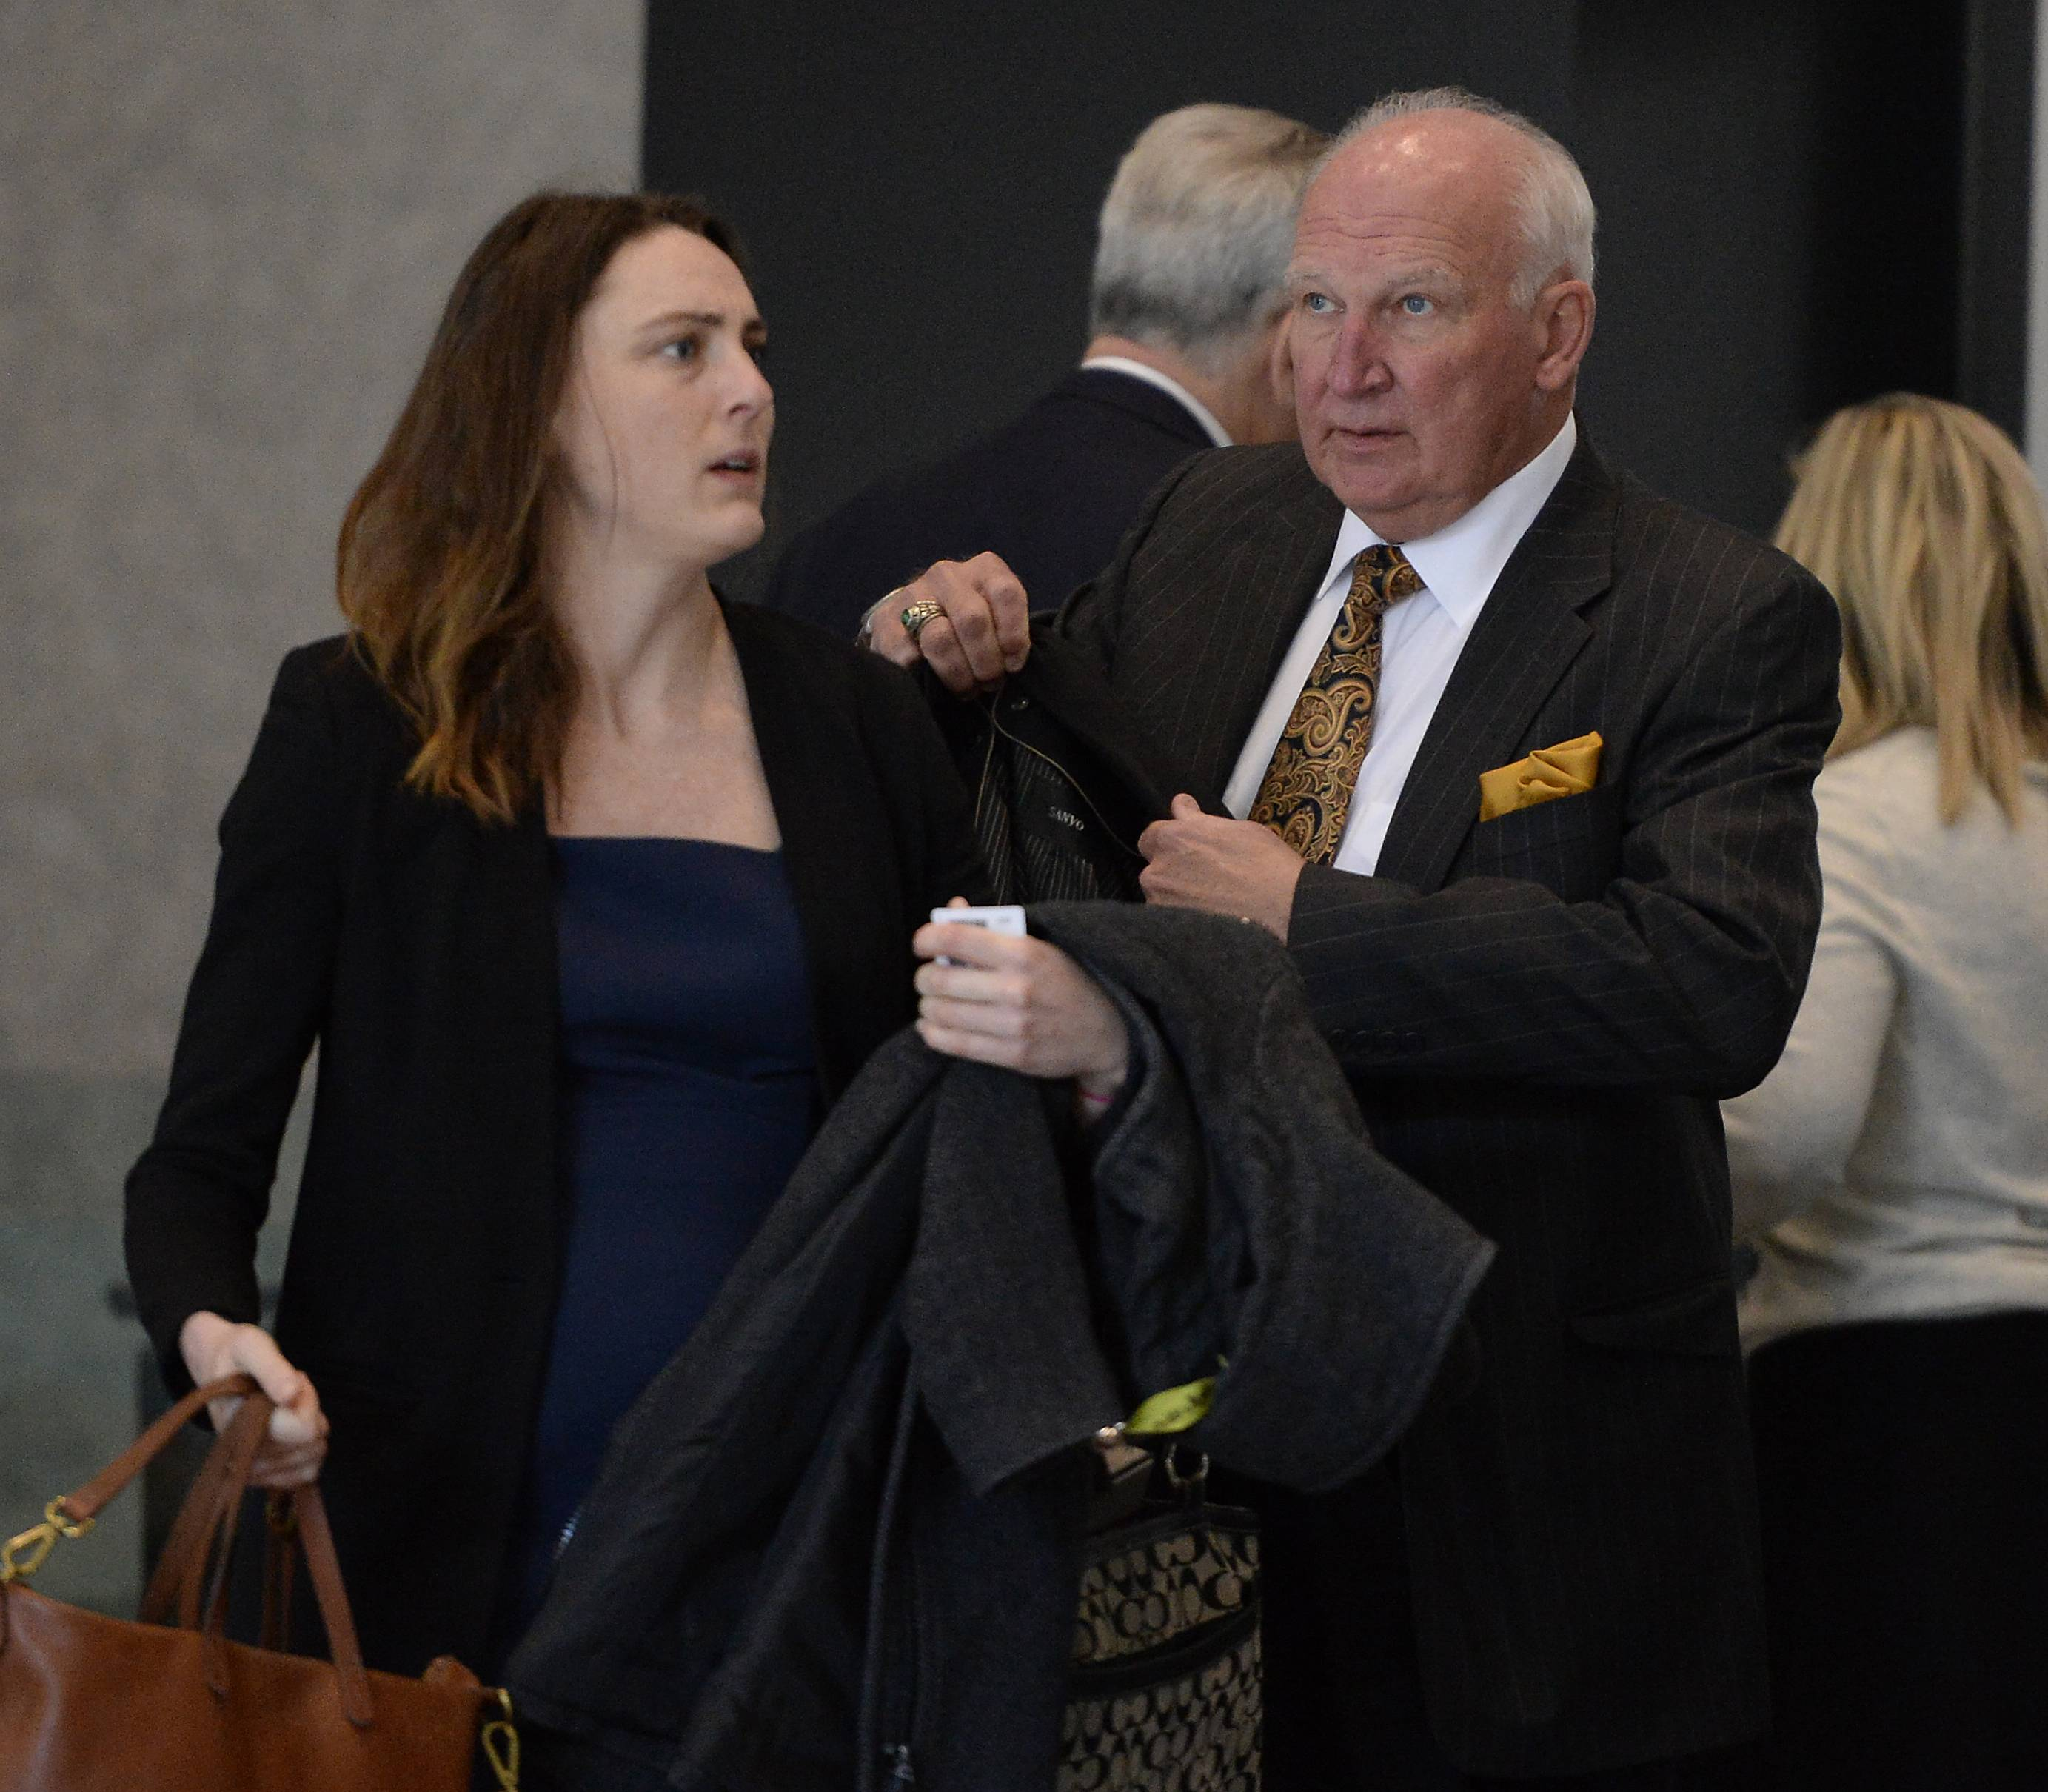 Former College of DuPage President Robert Breuder walks into federal court Tuesday for an appellate court hearing concerning the validity of his contract with the school at the time of his October 2015 firing.